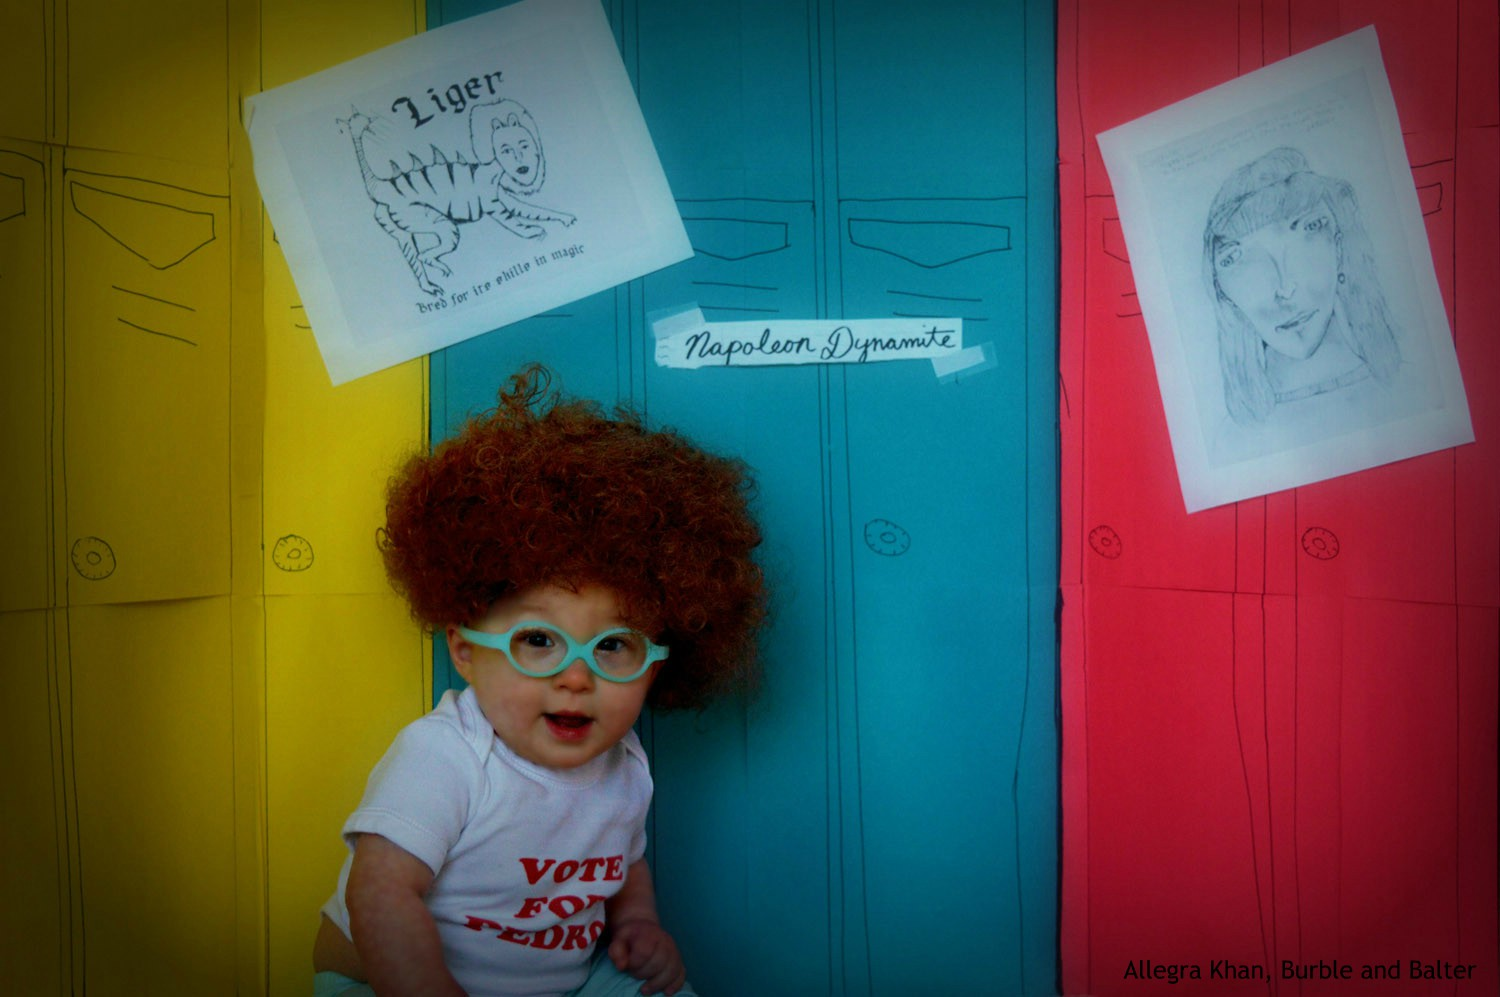 Napoleon-Dynamite-4-Baby-Photoshoot-Costume-Burble-and-Balter.jpg